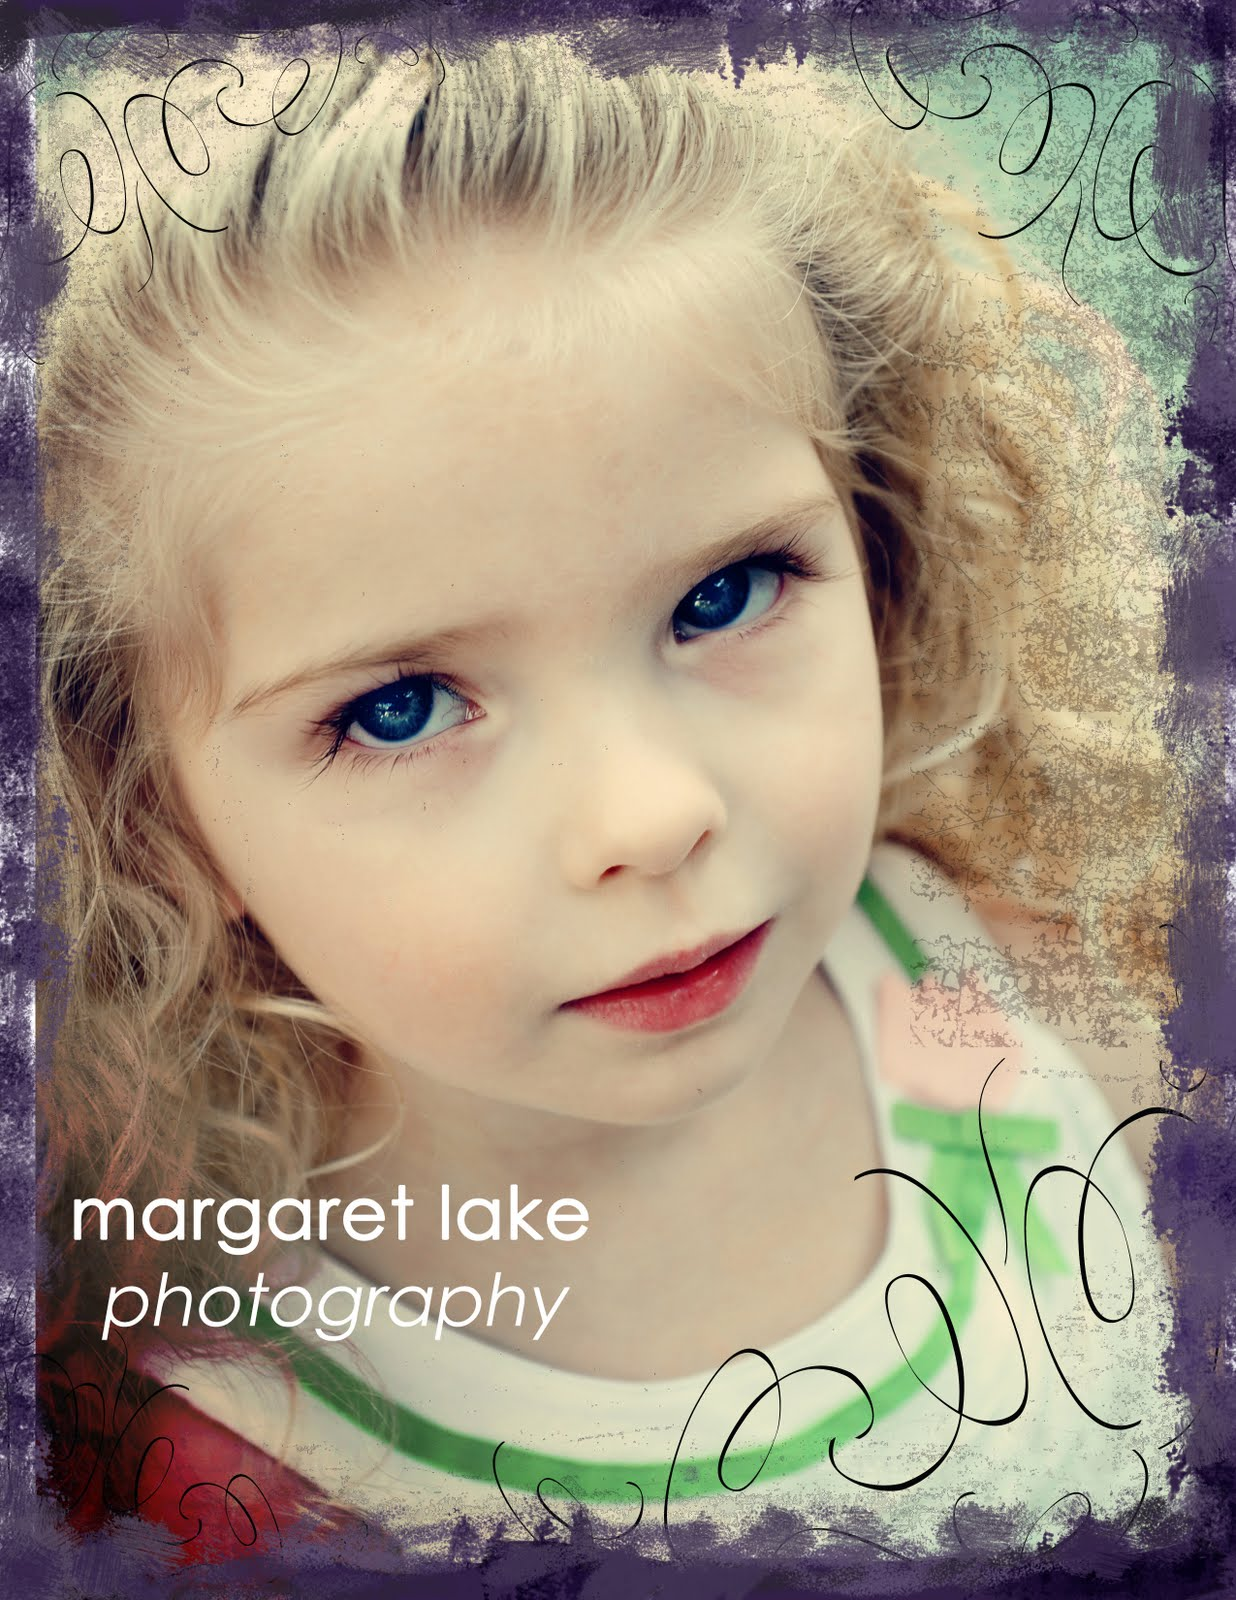 Margaret Lake Photography